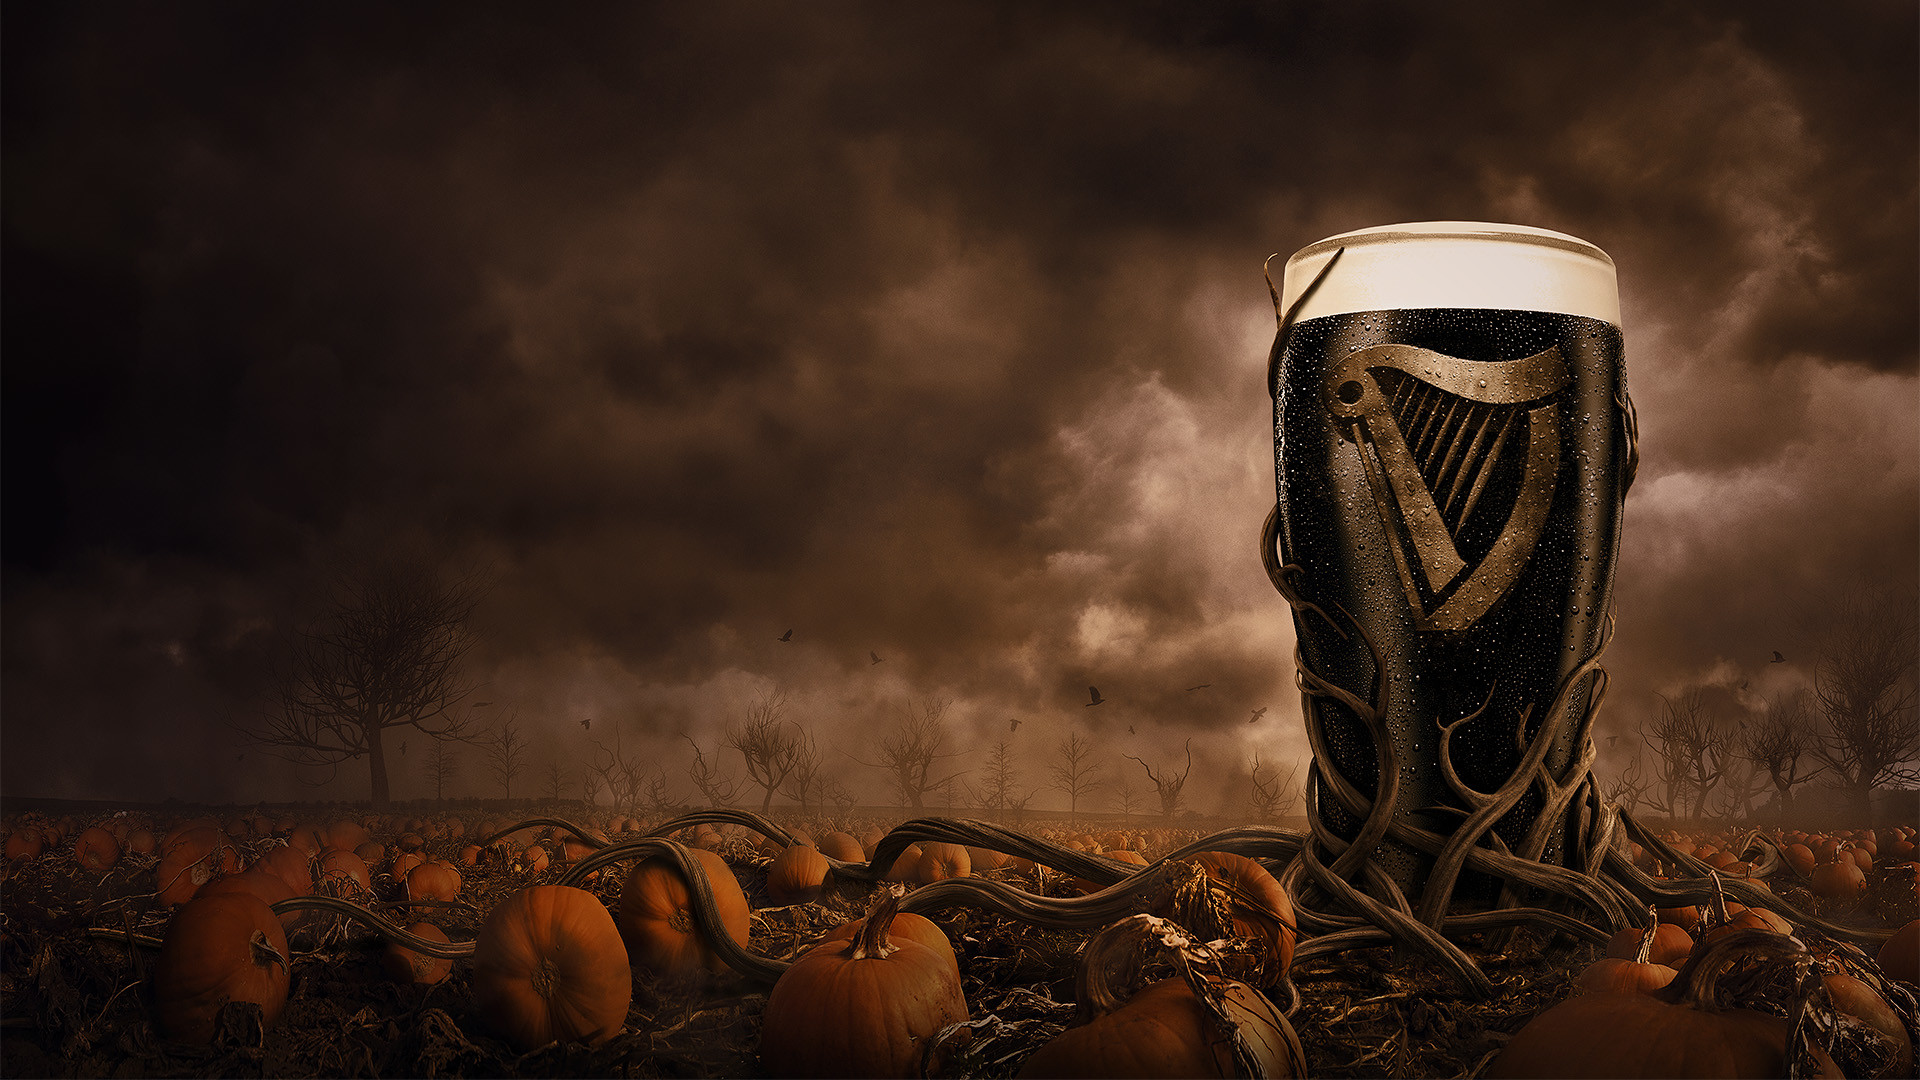 Res: 1920x1080, Guinness Wallpapers 14 - 1920 X 1080